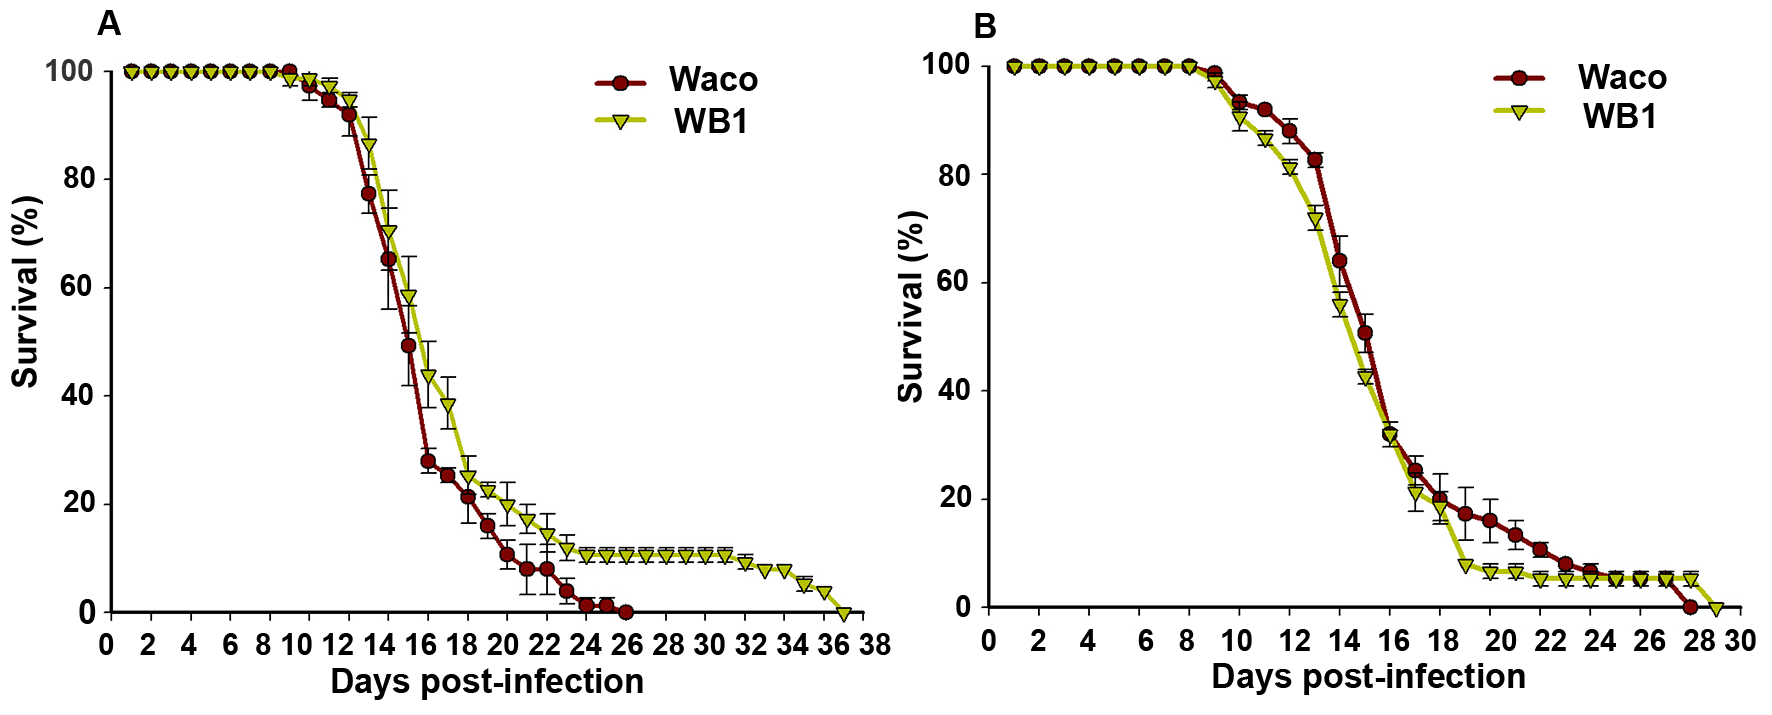 Longevity of Waco and WB1 mosquitoes fed with blood mixed with or without DENV.